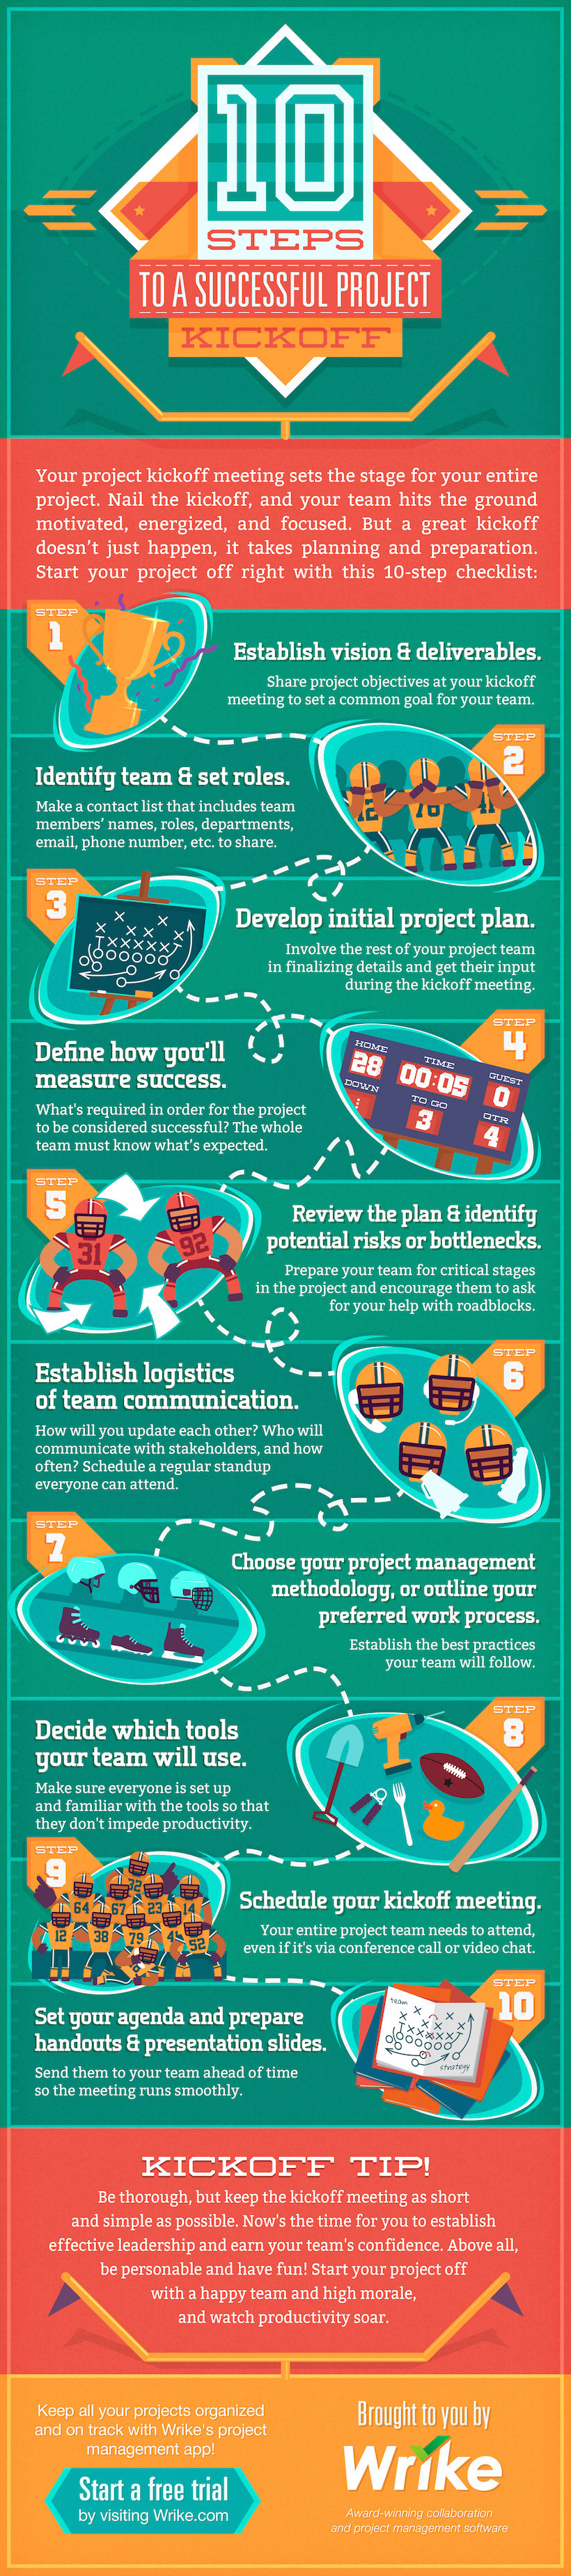 10 Steps to a Kickass Project Kickoff: A Checklist for Project Managers (#Infographic)